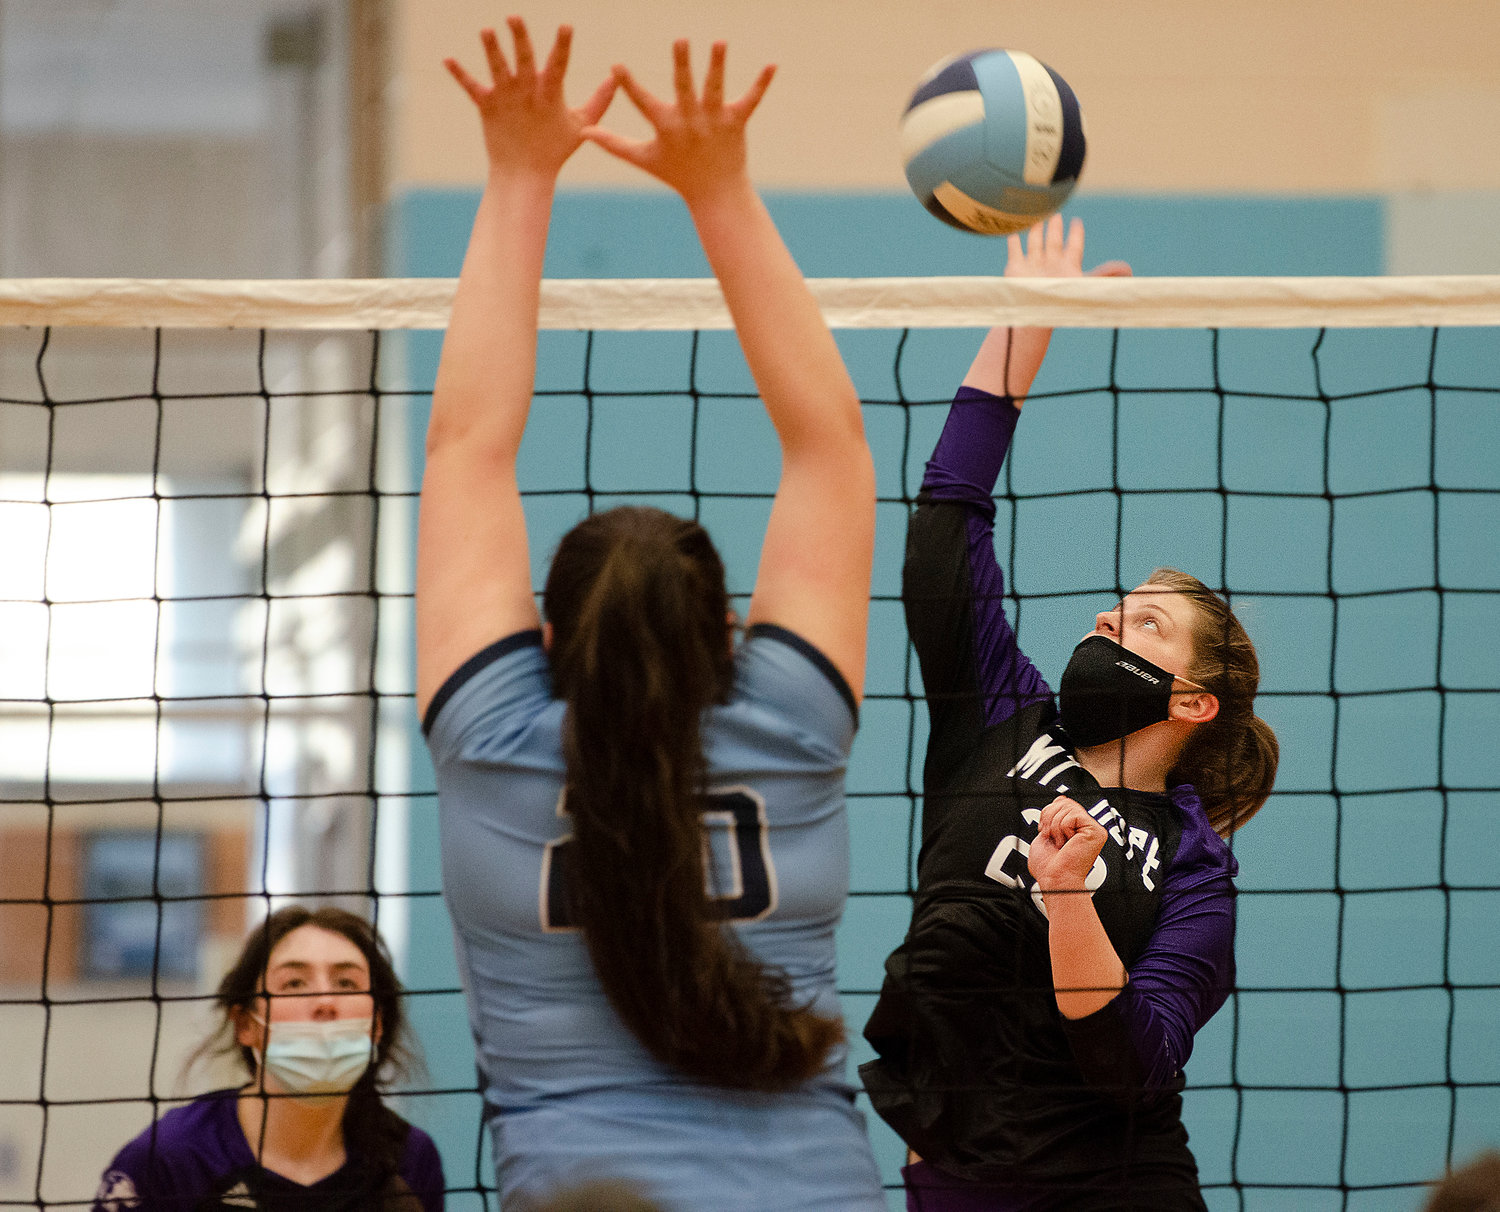 Hannah Rodriques (left) looks on as Grace Stephenson slams the ball over the net for a kill.